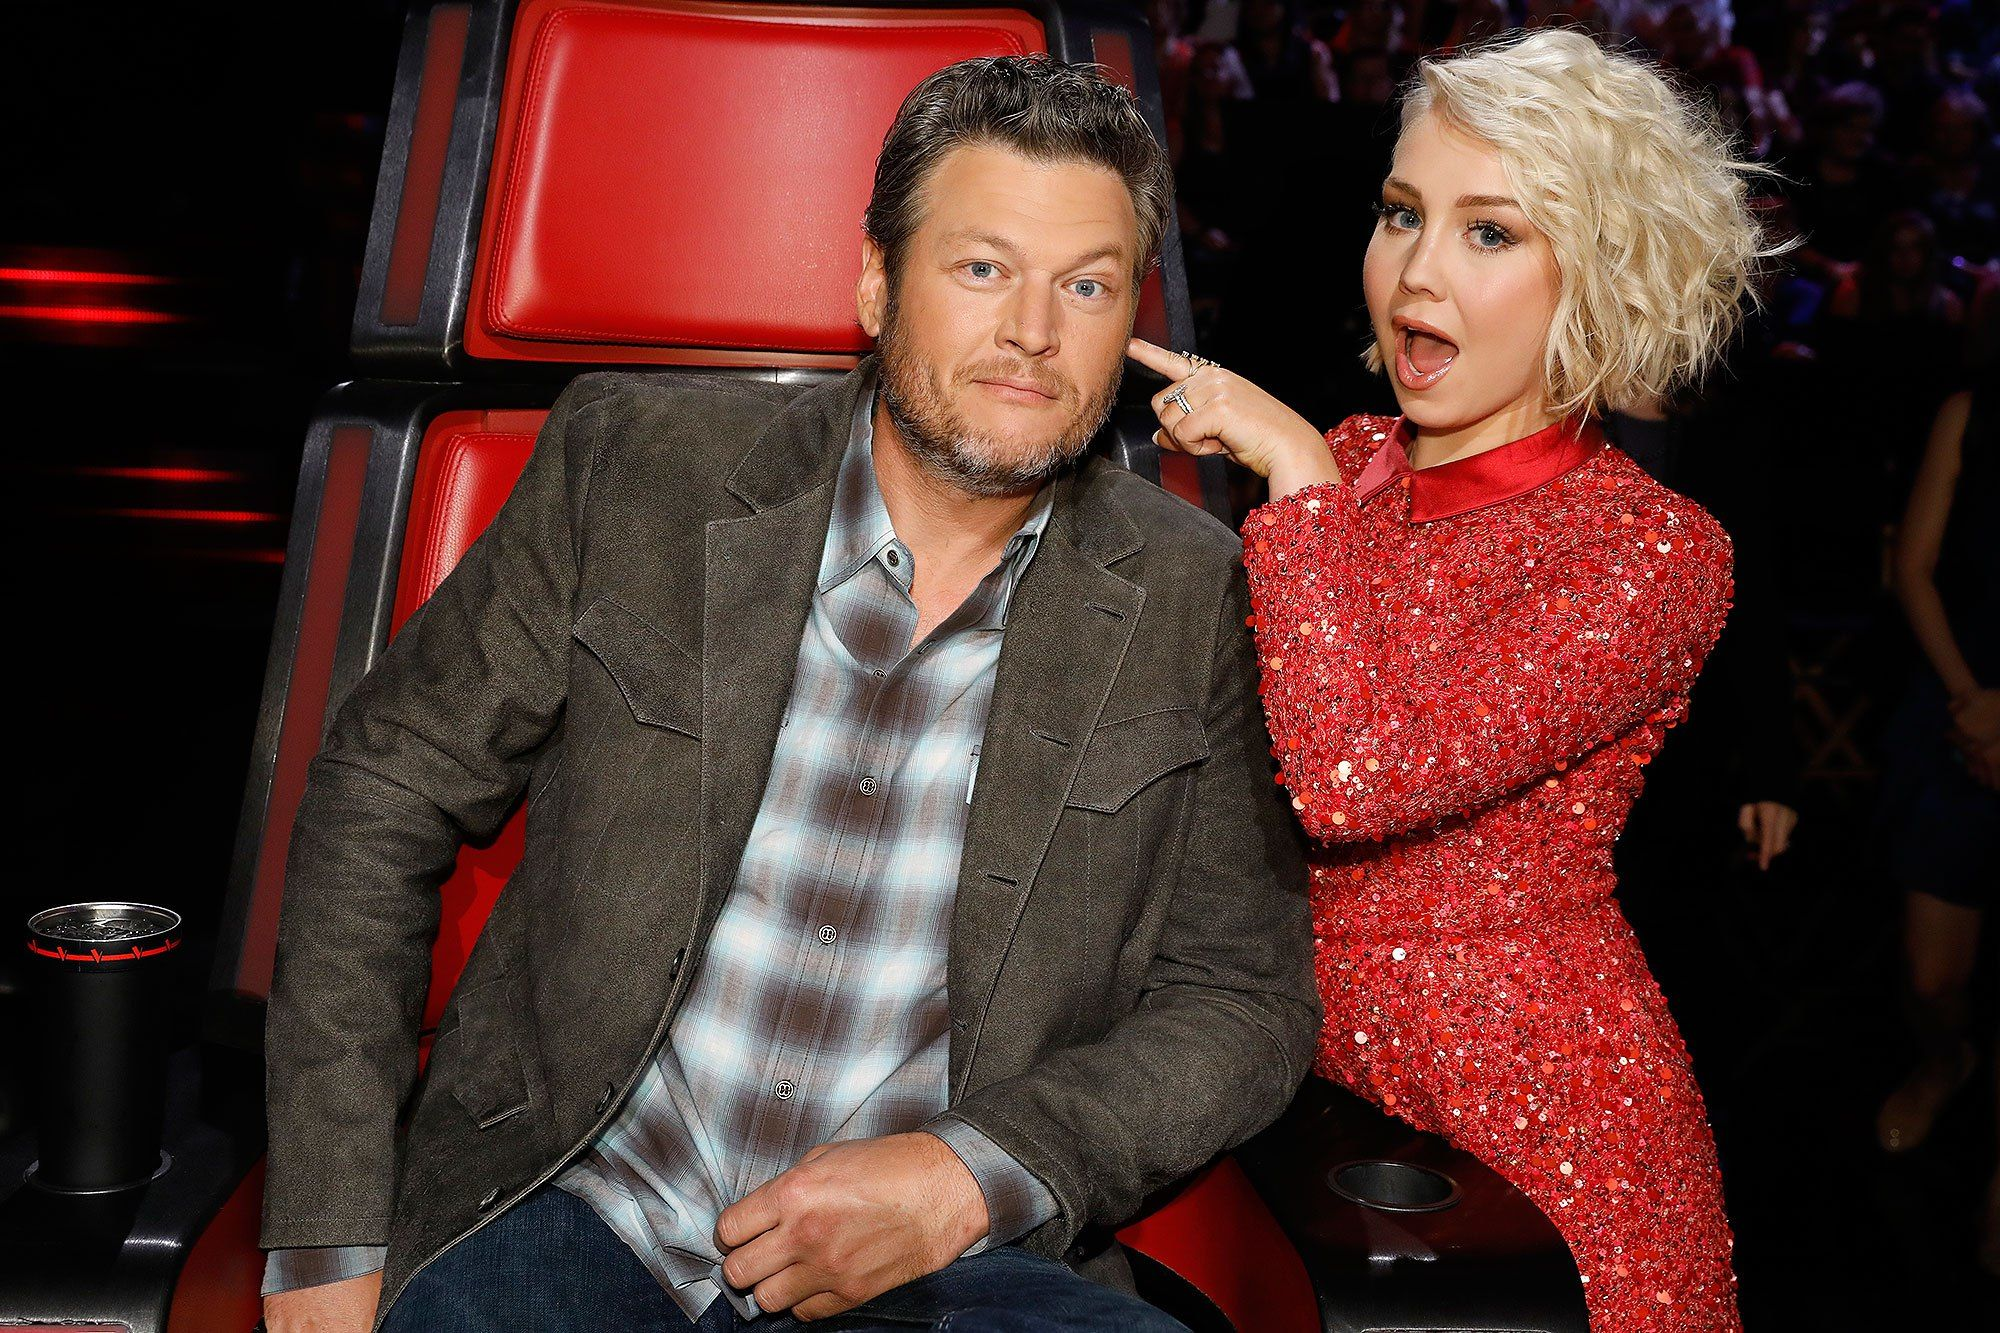 How Blake Shelton Stopped RaeLynn from Giving Up: 'I Think the World of Him'